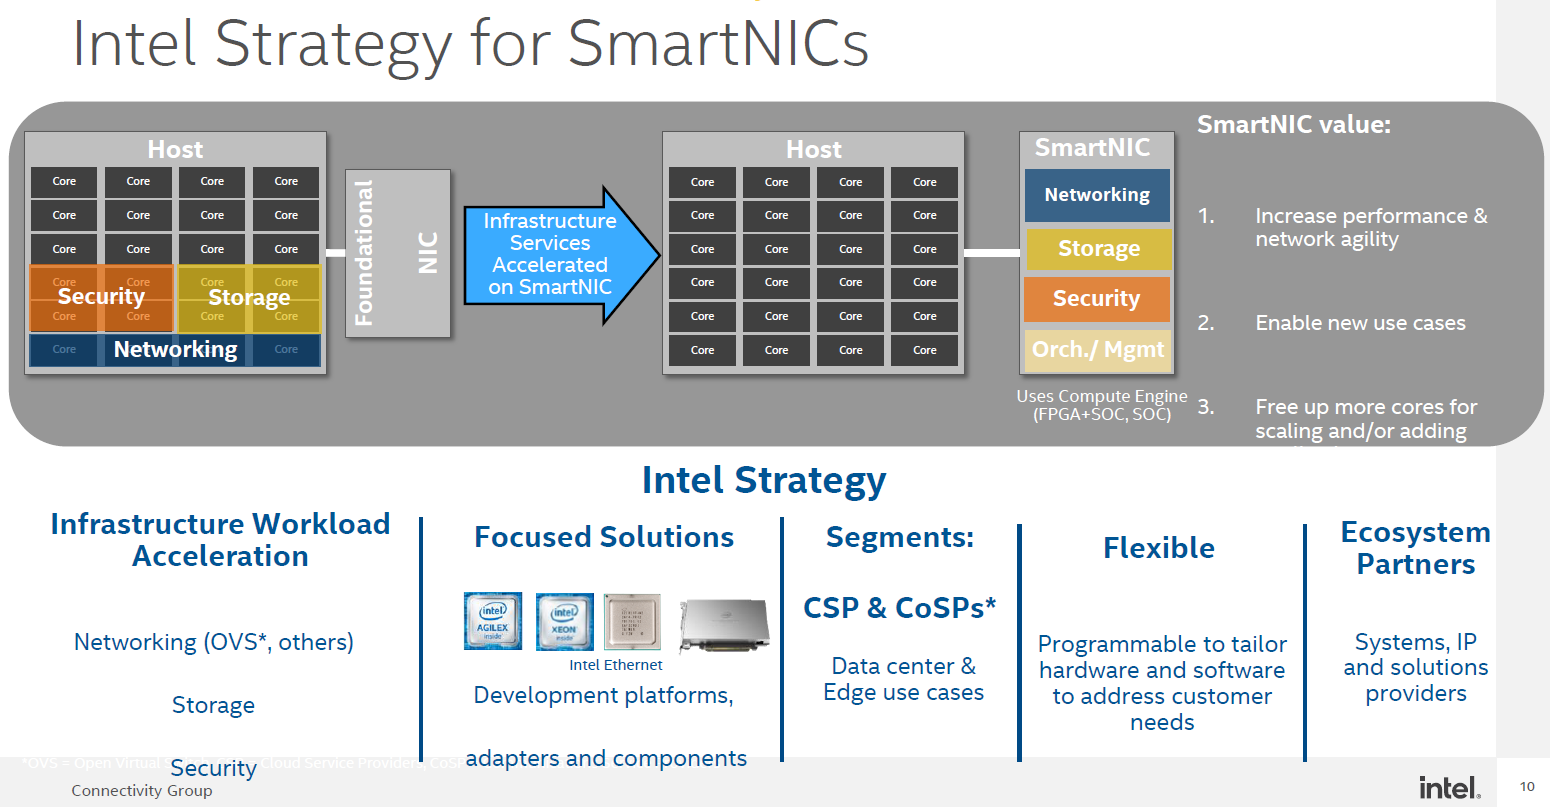 New Intel SmartNIC Strategy